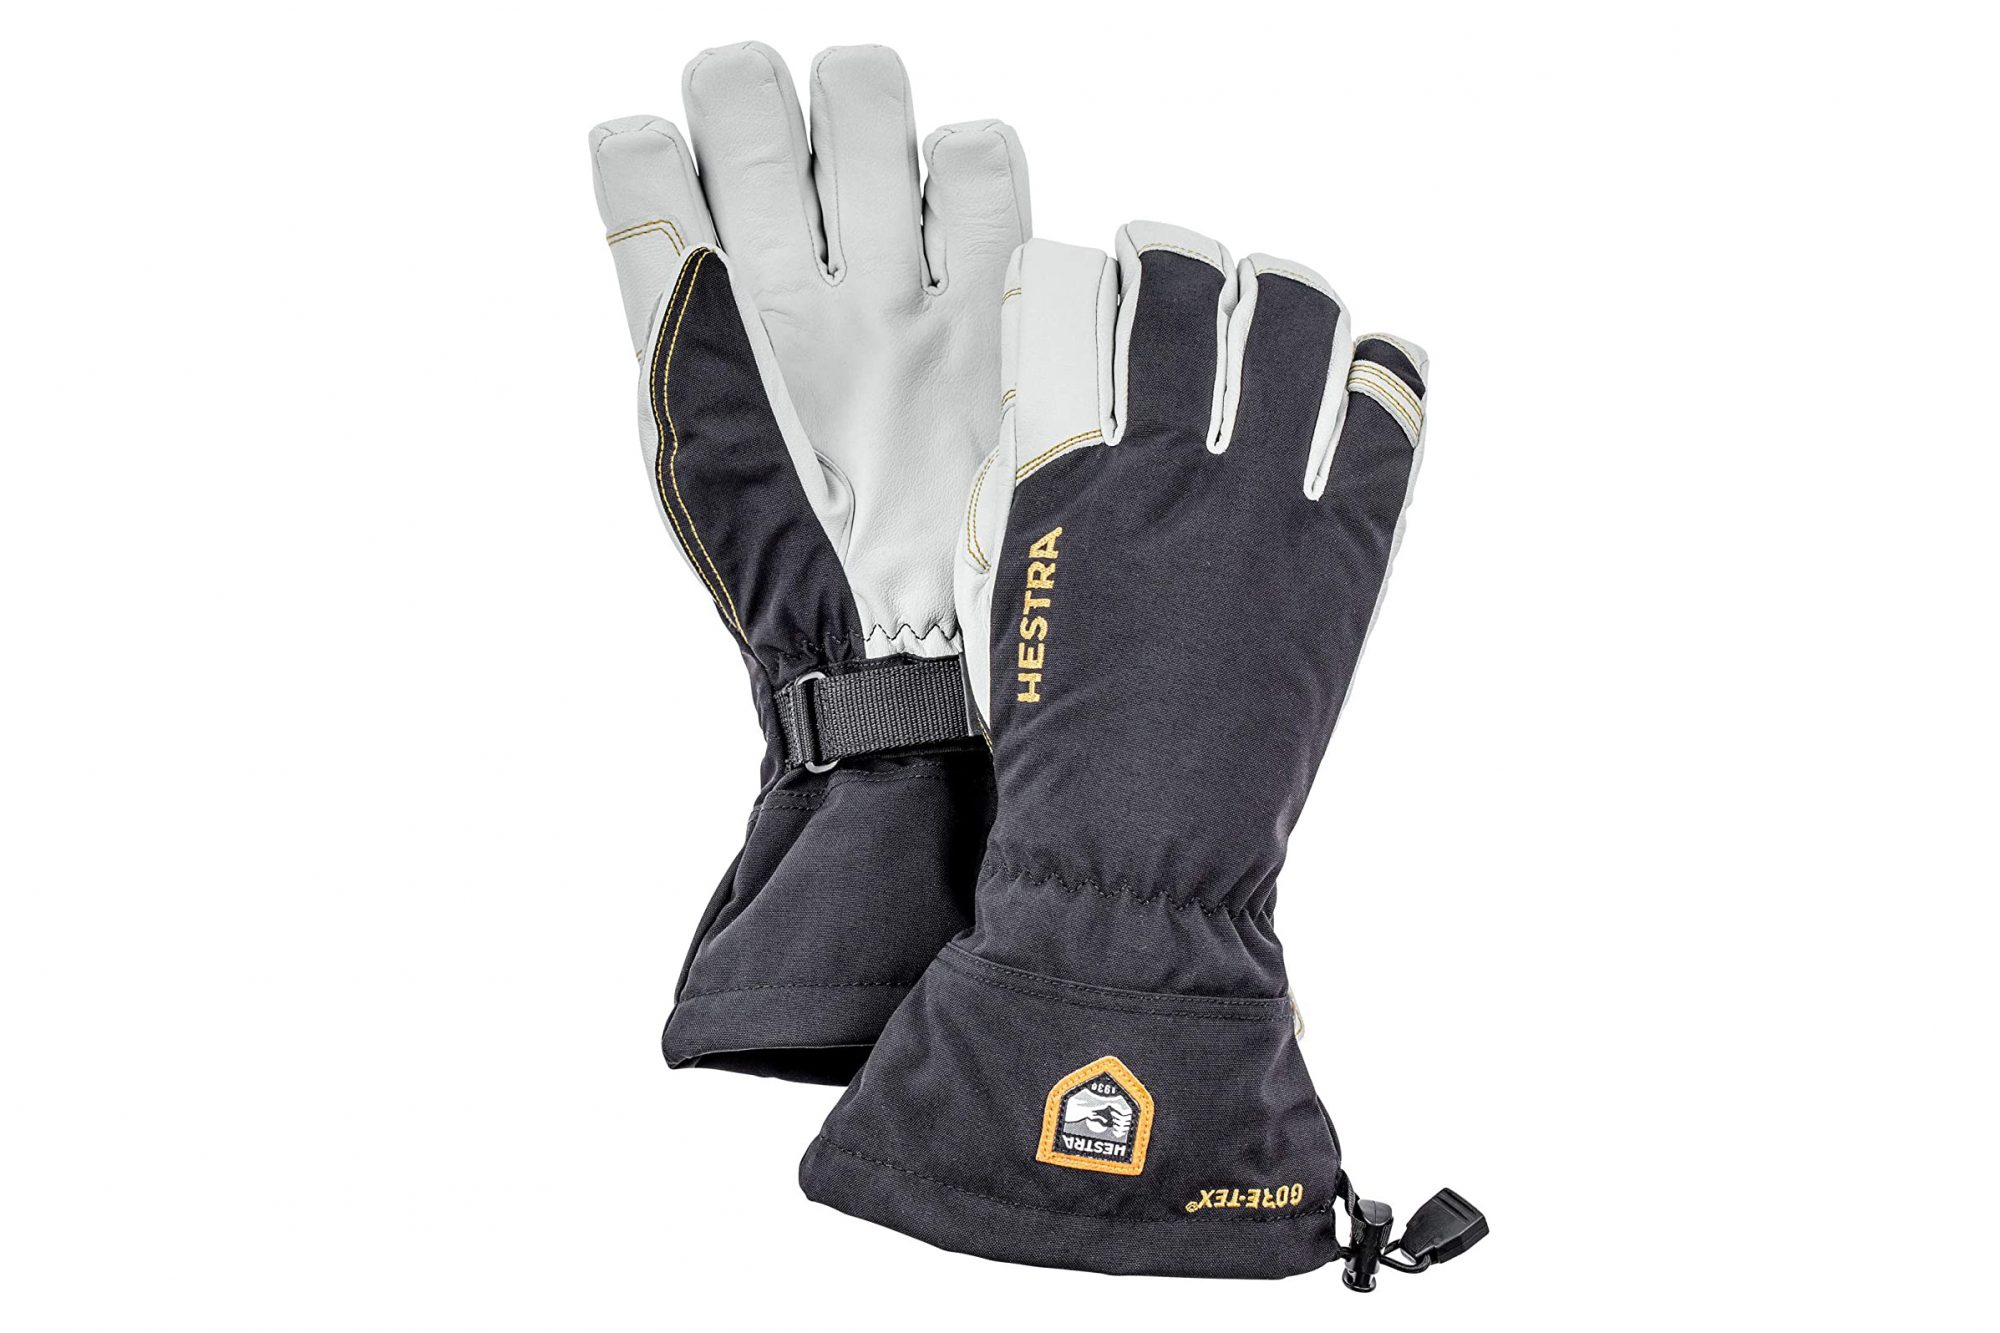 Best Ski Gloves: Hestra Army Leather Gore-TEX Gloves